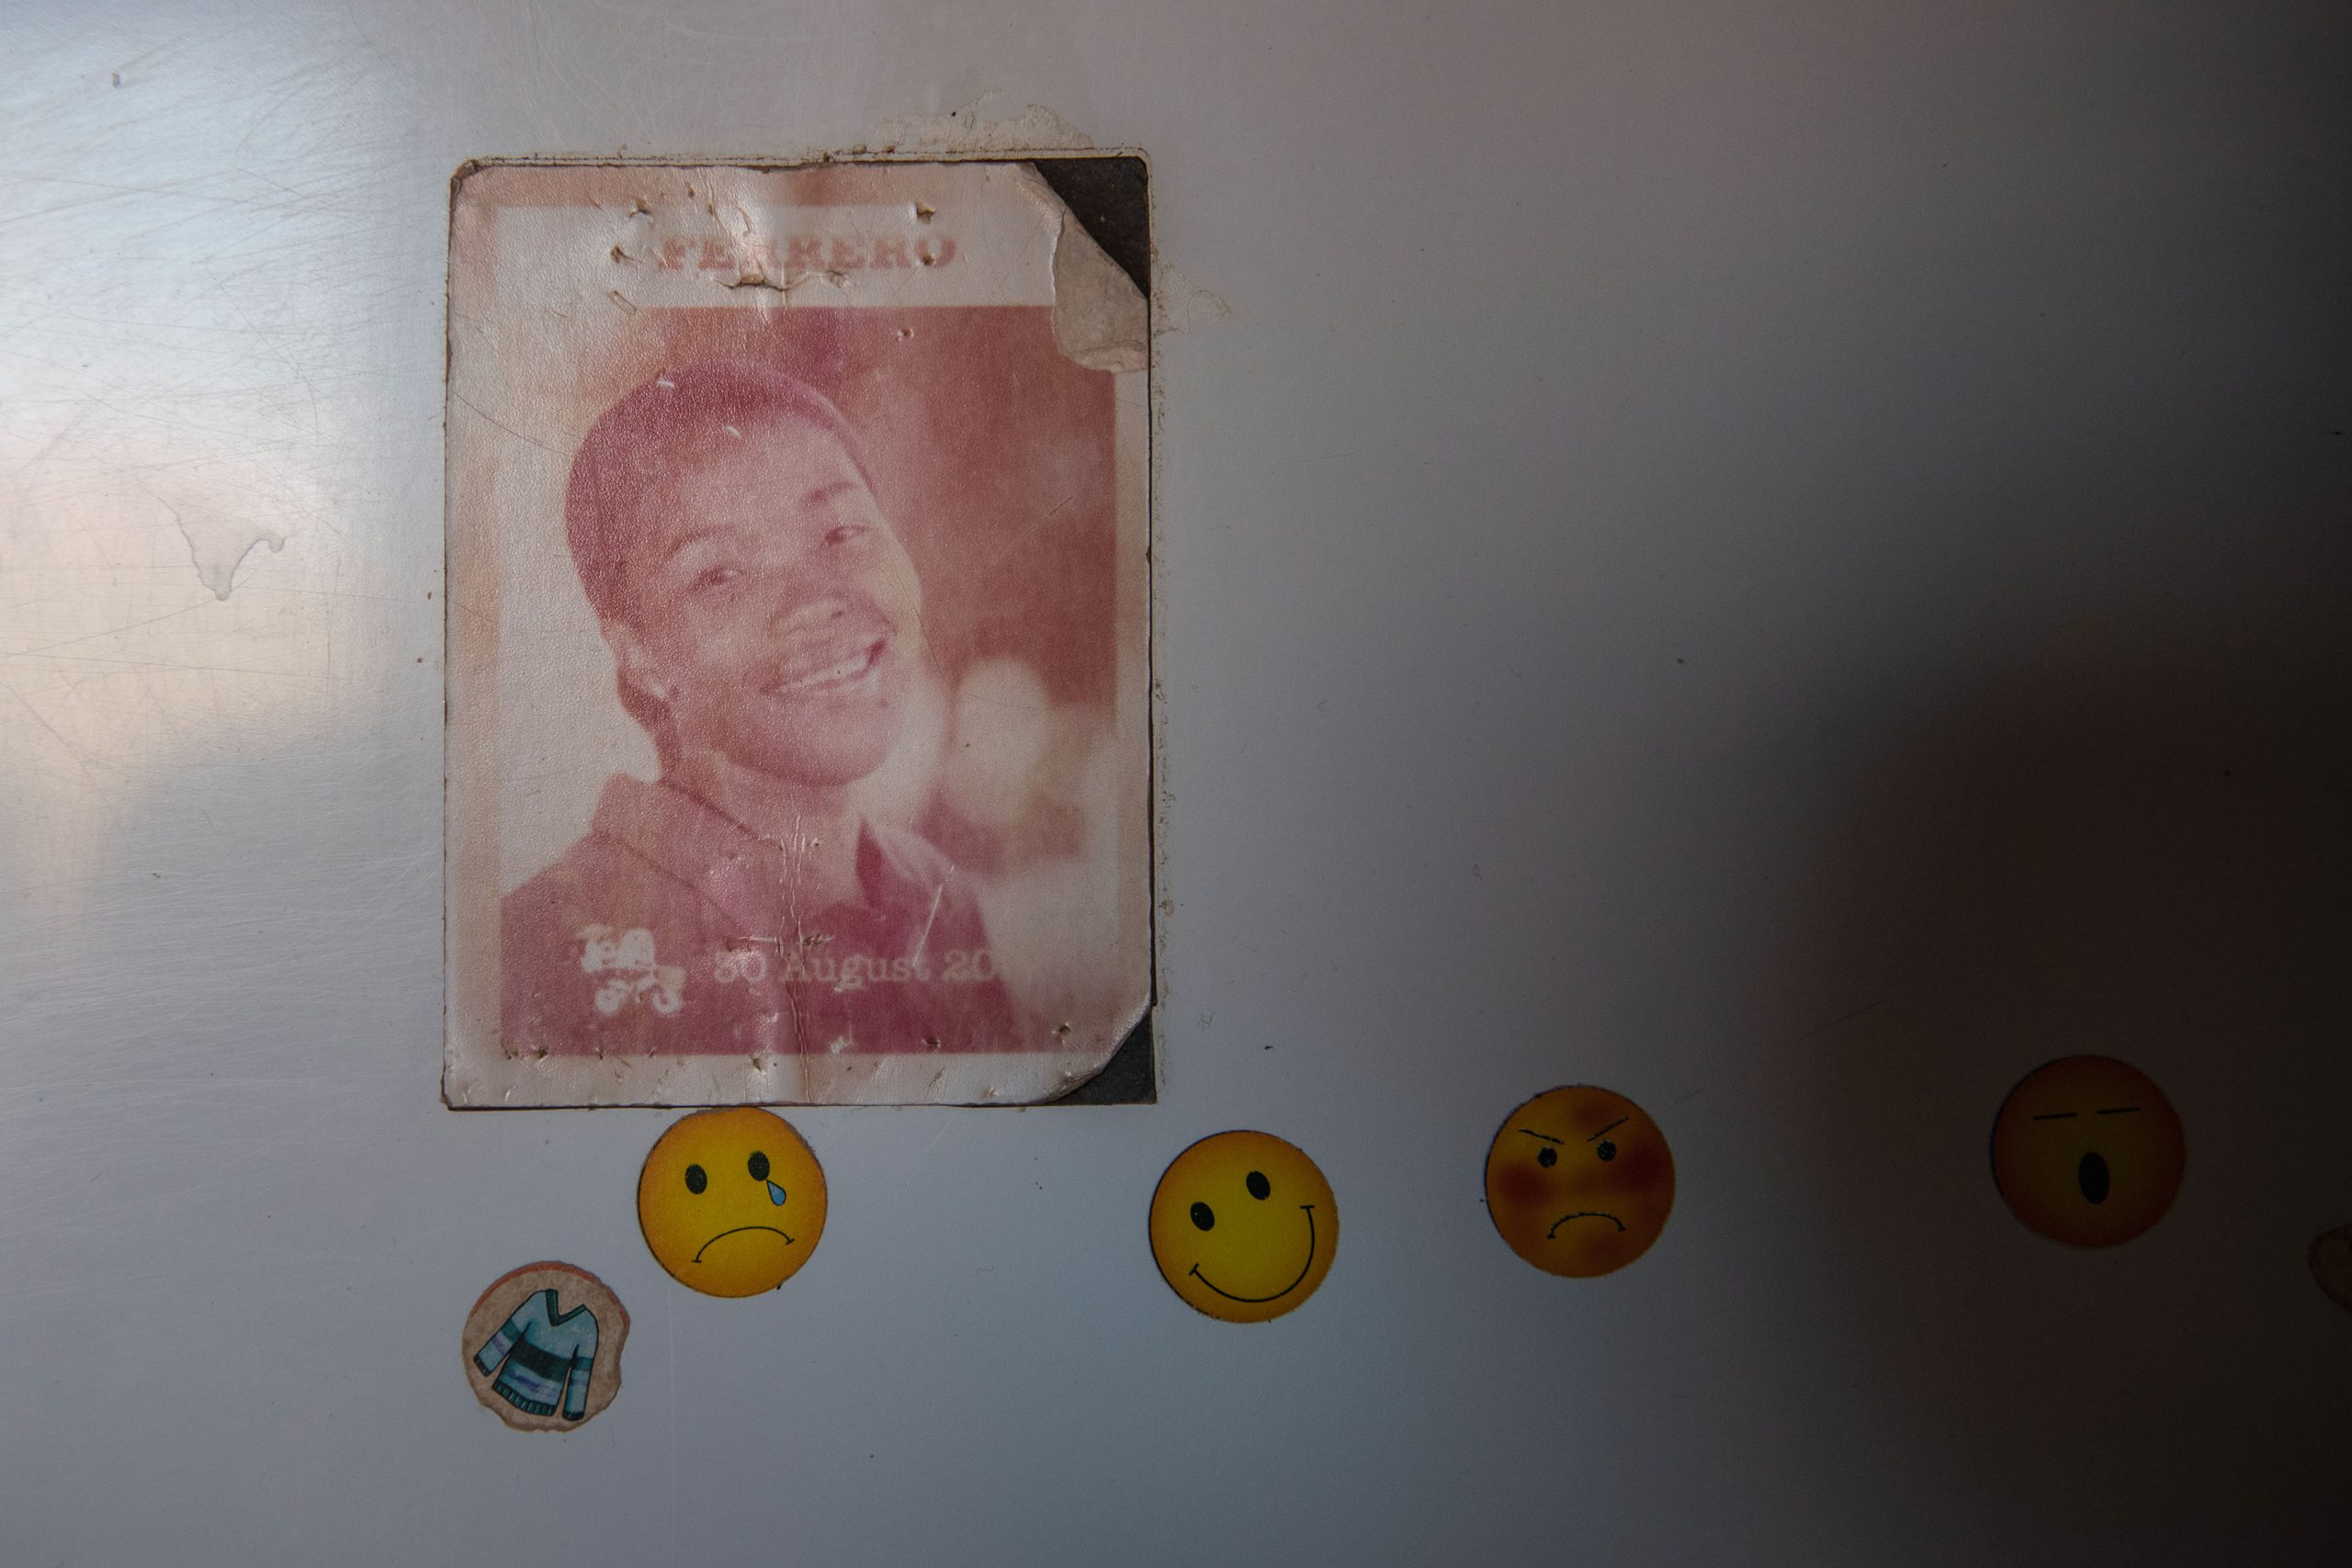 22 January 2020: A fridge magnet with a picture of Sthembile Ntshangase from happier days at the Ferrero factory.